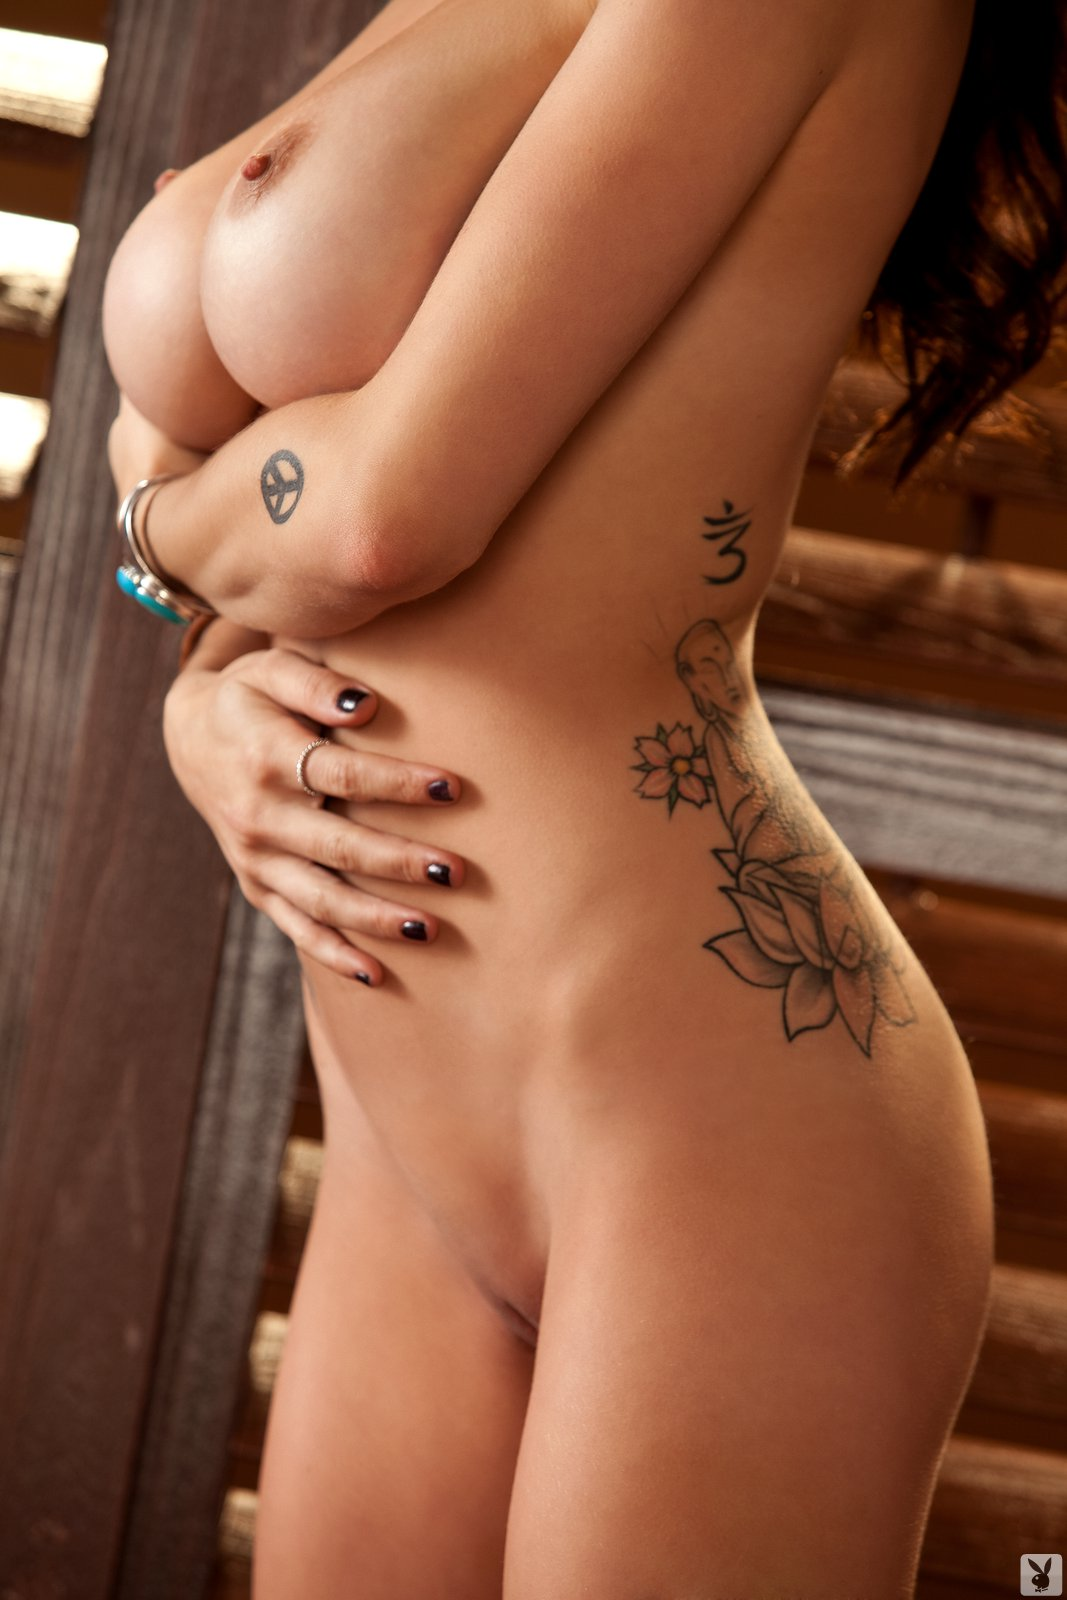 Nude girls doing nasty things